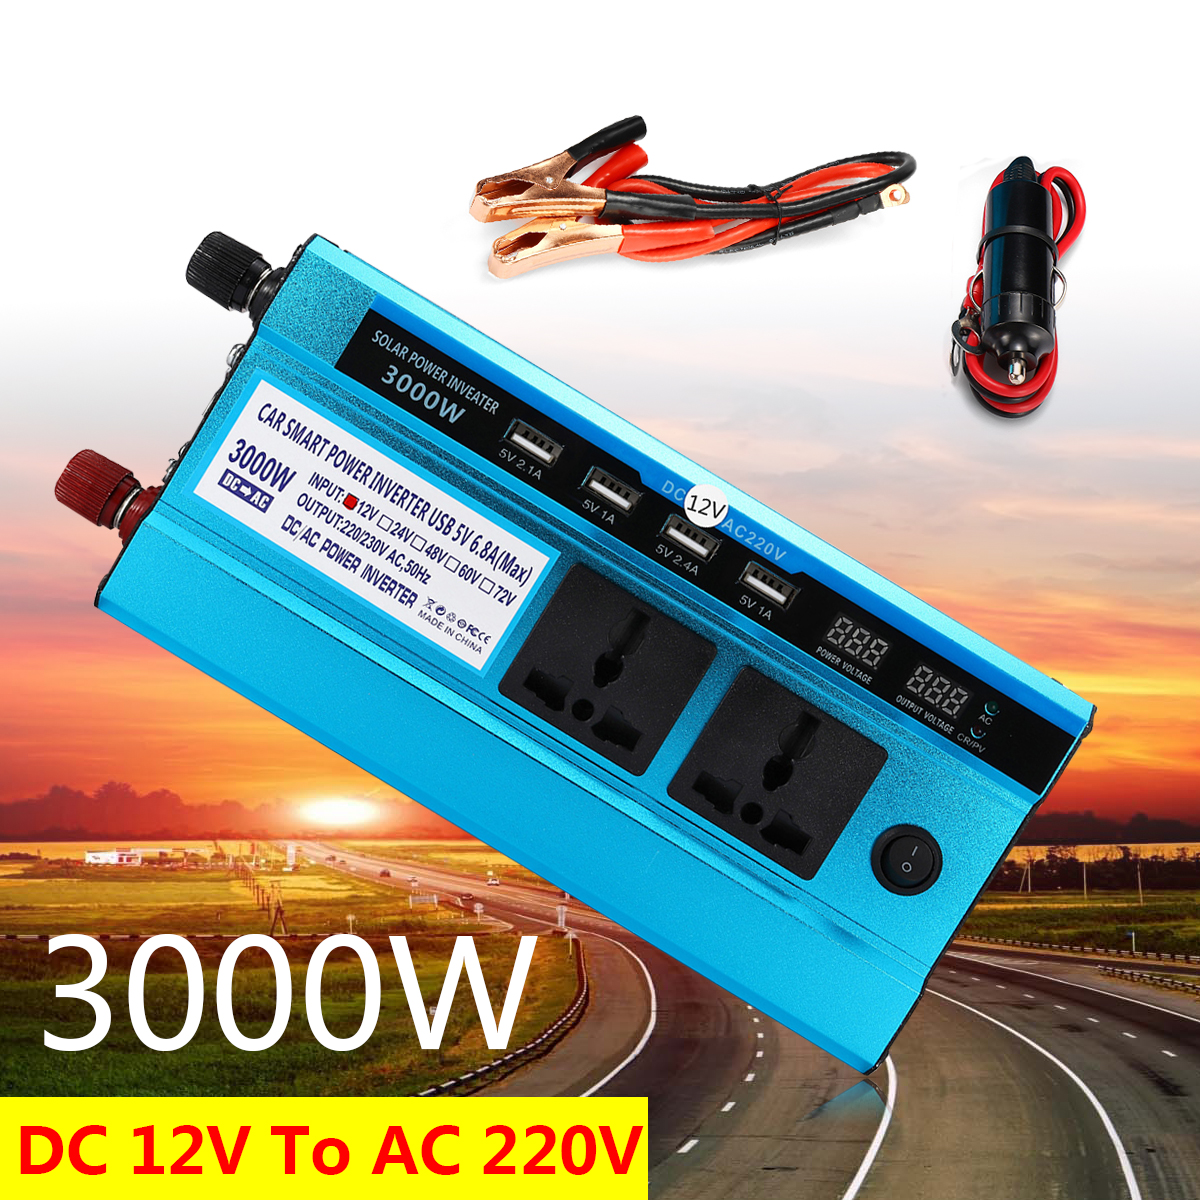 Aliexpresscom Voltage Transformer Car Led Solar Power Inverter Technology How To Wire Two 24v Panels In Parallel With 12v Peak 3000w Dc 12 Ac 220v Sine Wave Usb Converter Digital Display